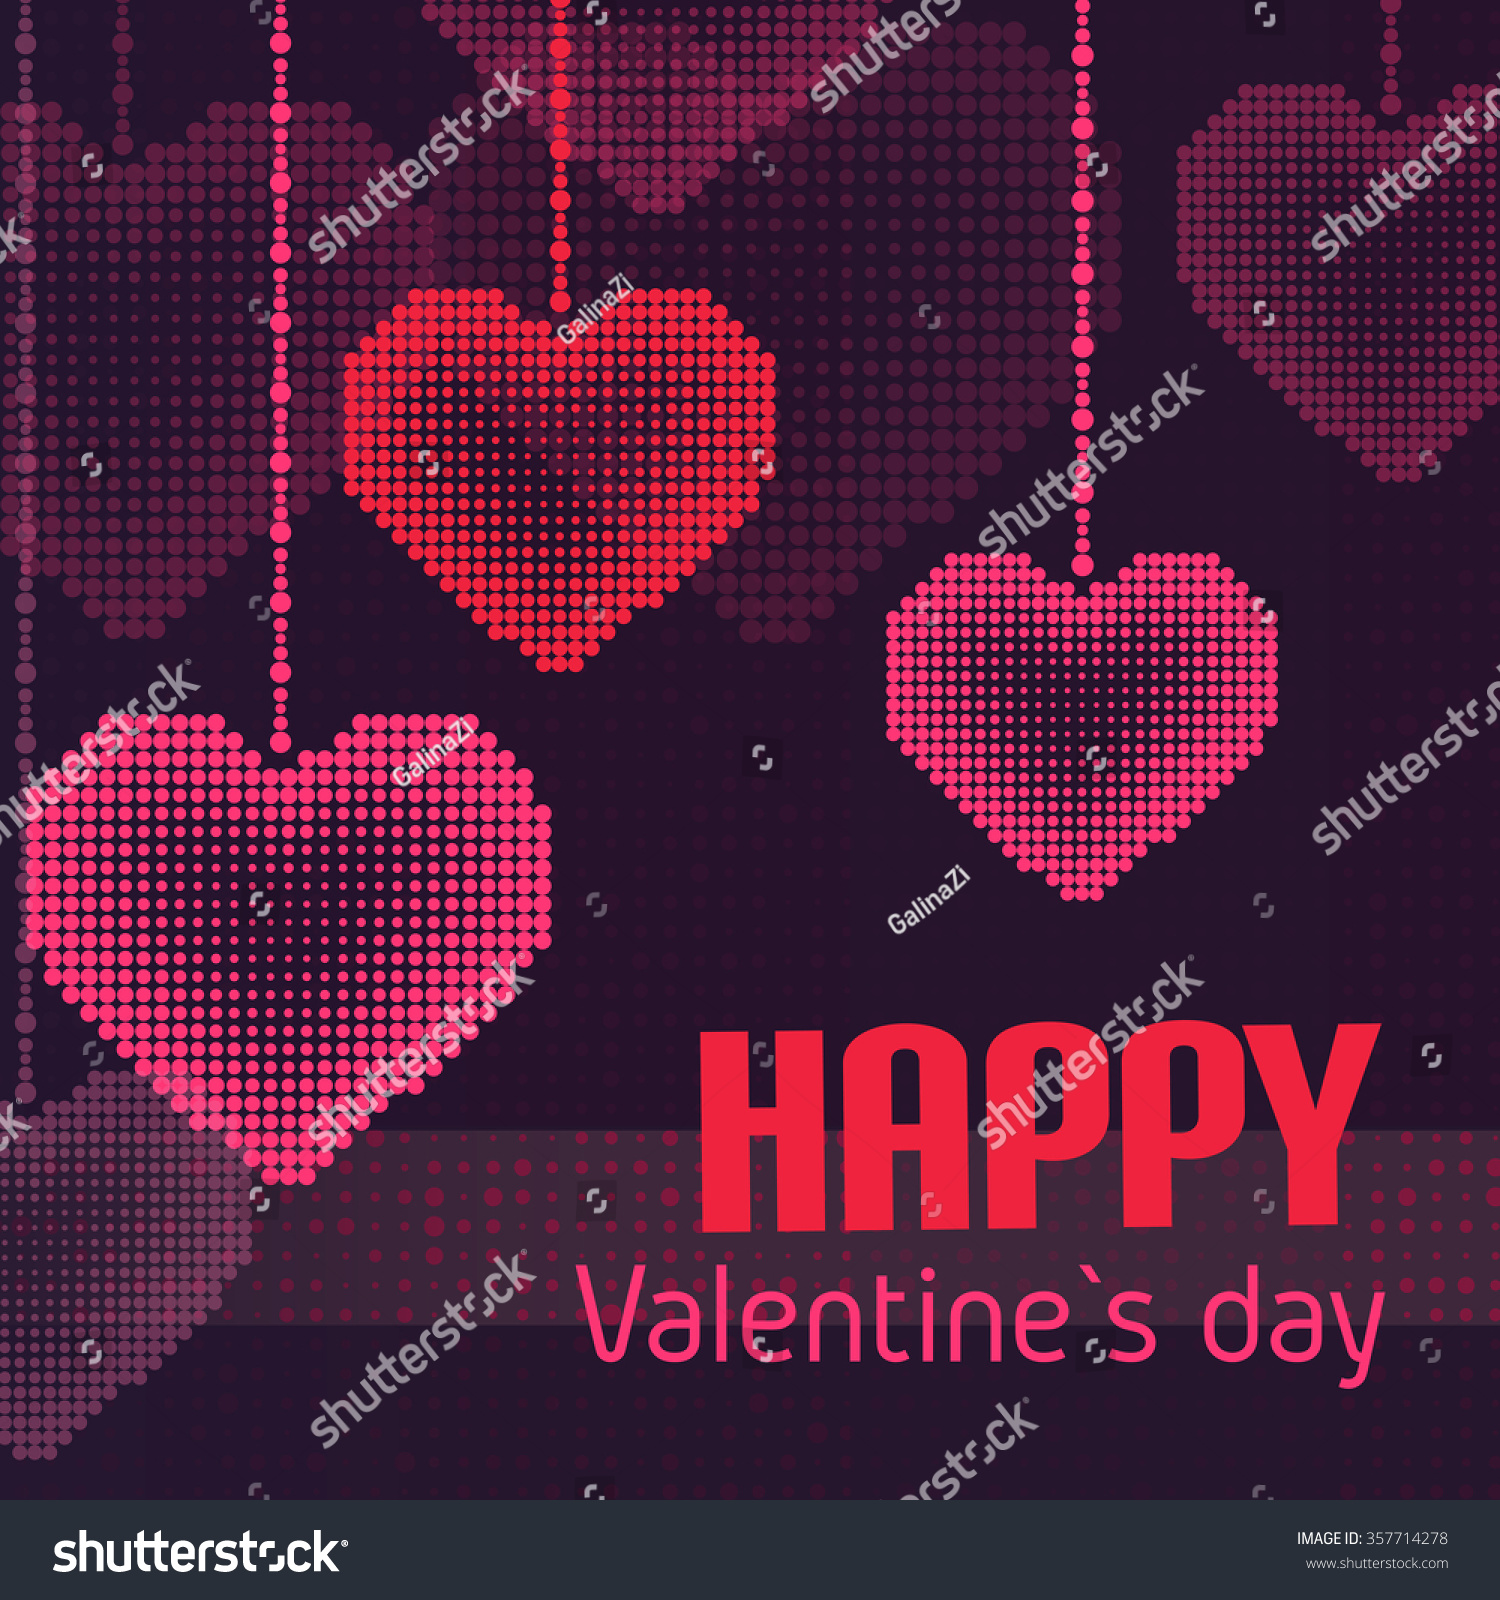 Happy valentines day greeting card hearts stock vector 357714278 happy valentines day greeting card with hearts halftone vector background kristyandbryce Image collections